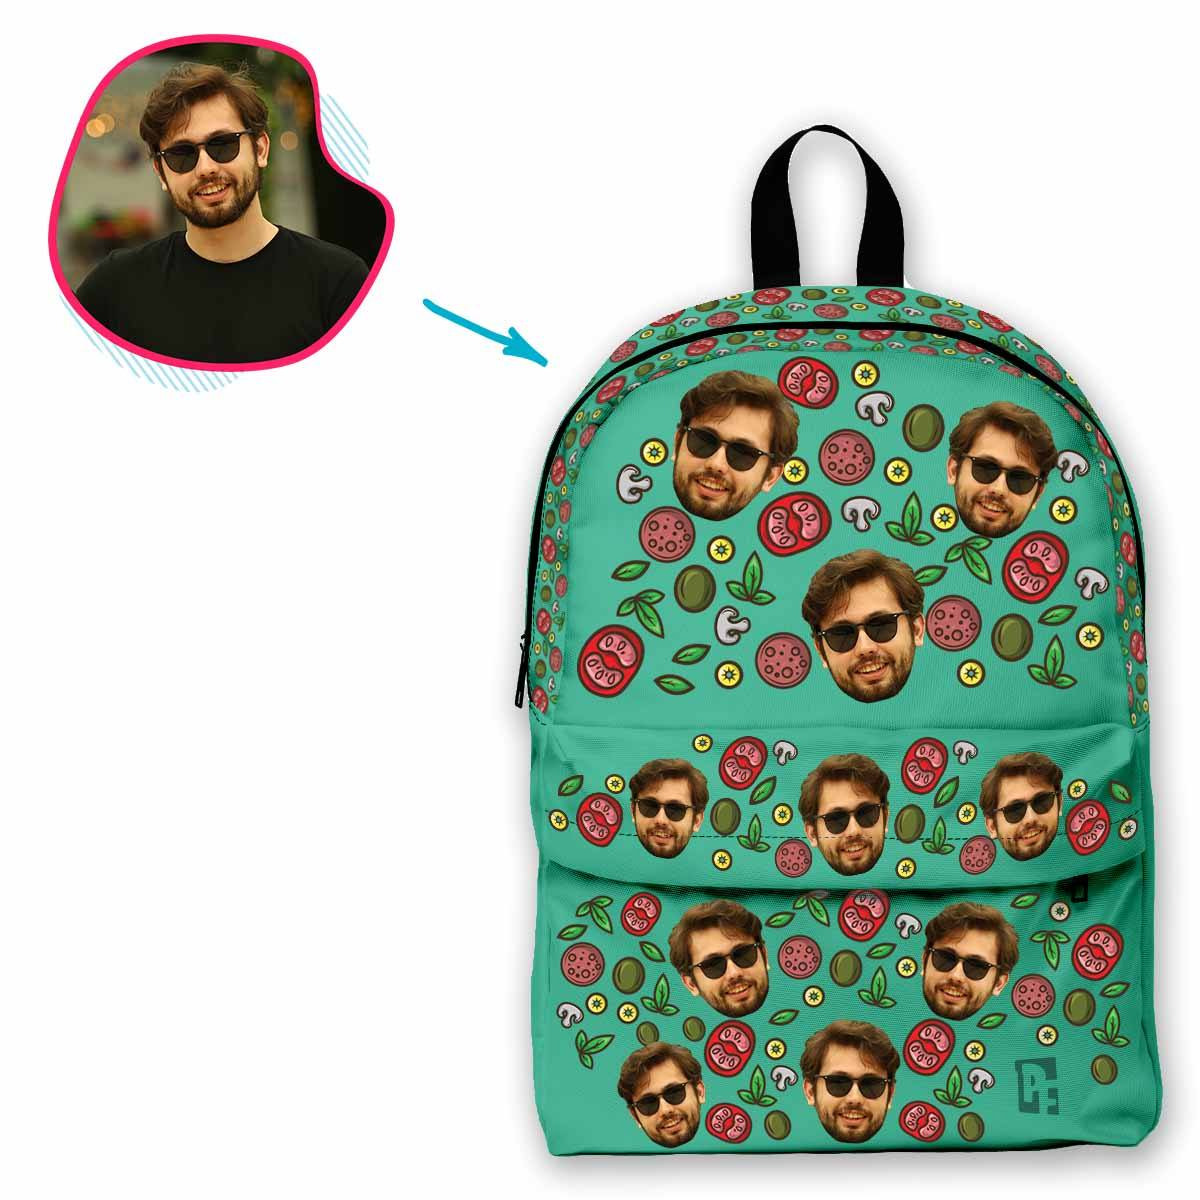 mint Pizza classic backpack personalized with photo of face printed on it